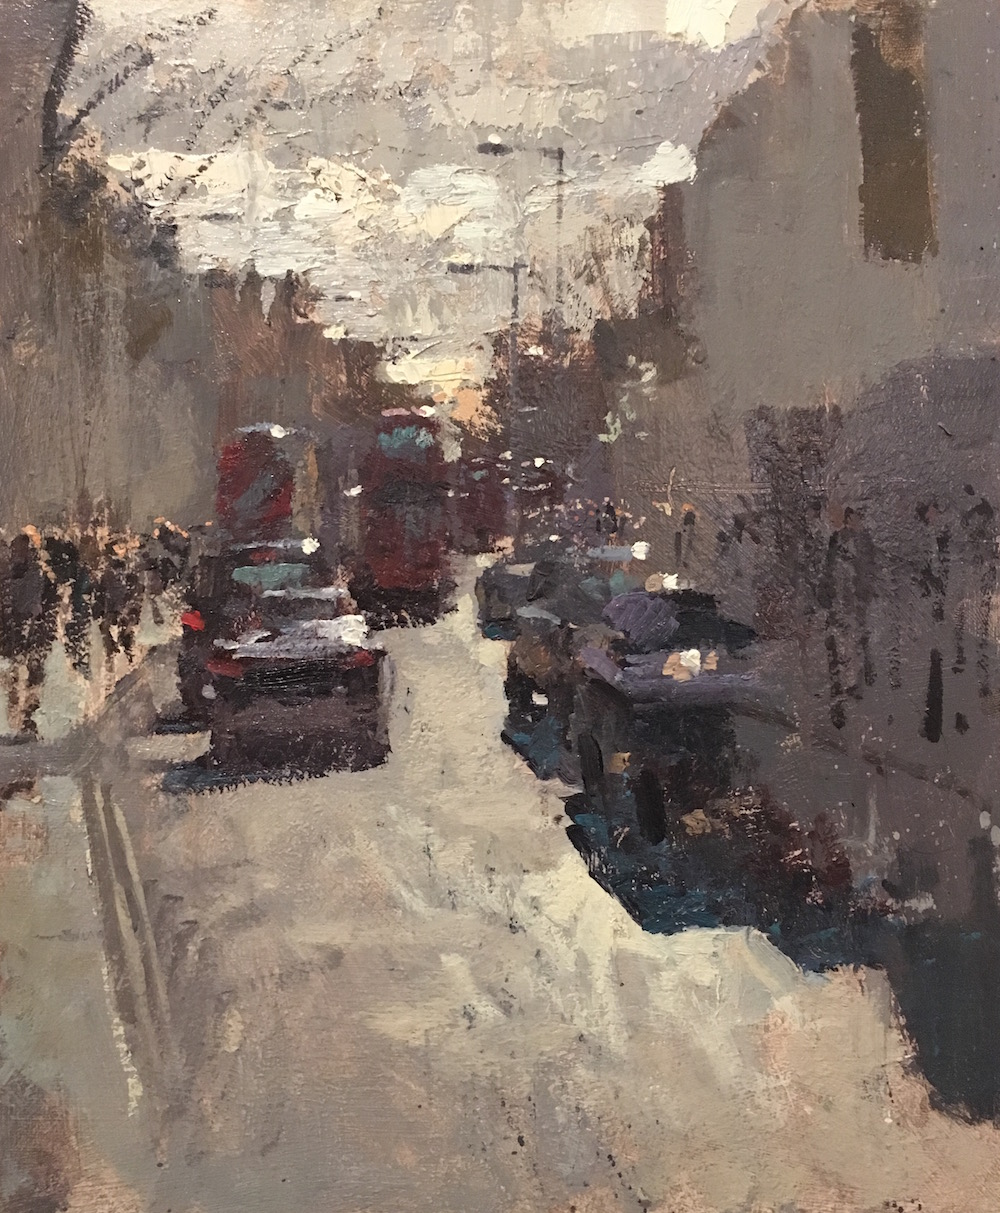 King's Road, Saturday Afternoon Benjamin Hope Oil on board, 25 x 30 cm, 2017